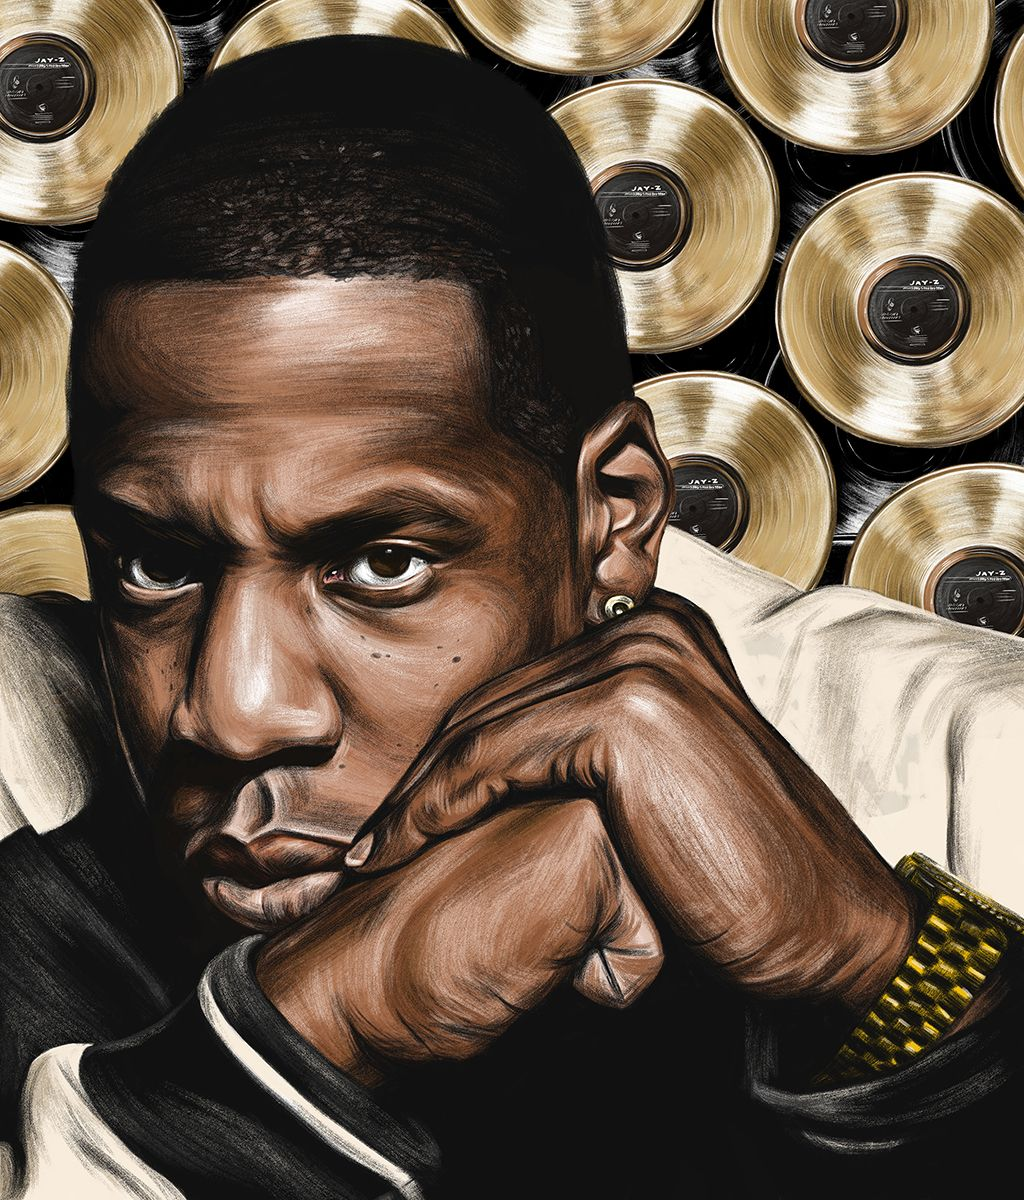 All 274 jay z songs ranked from worst to best malvernweather Gallery